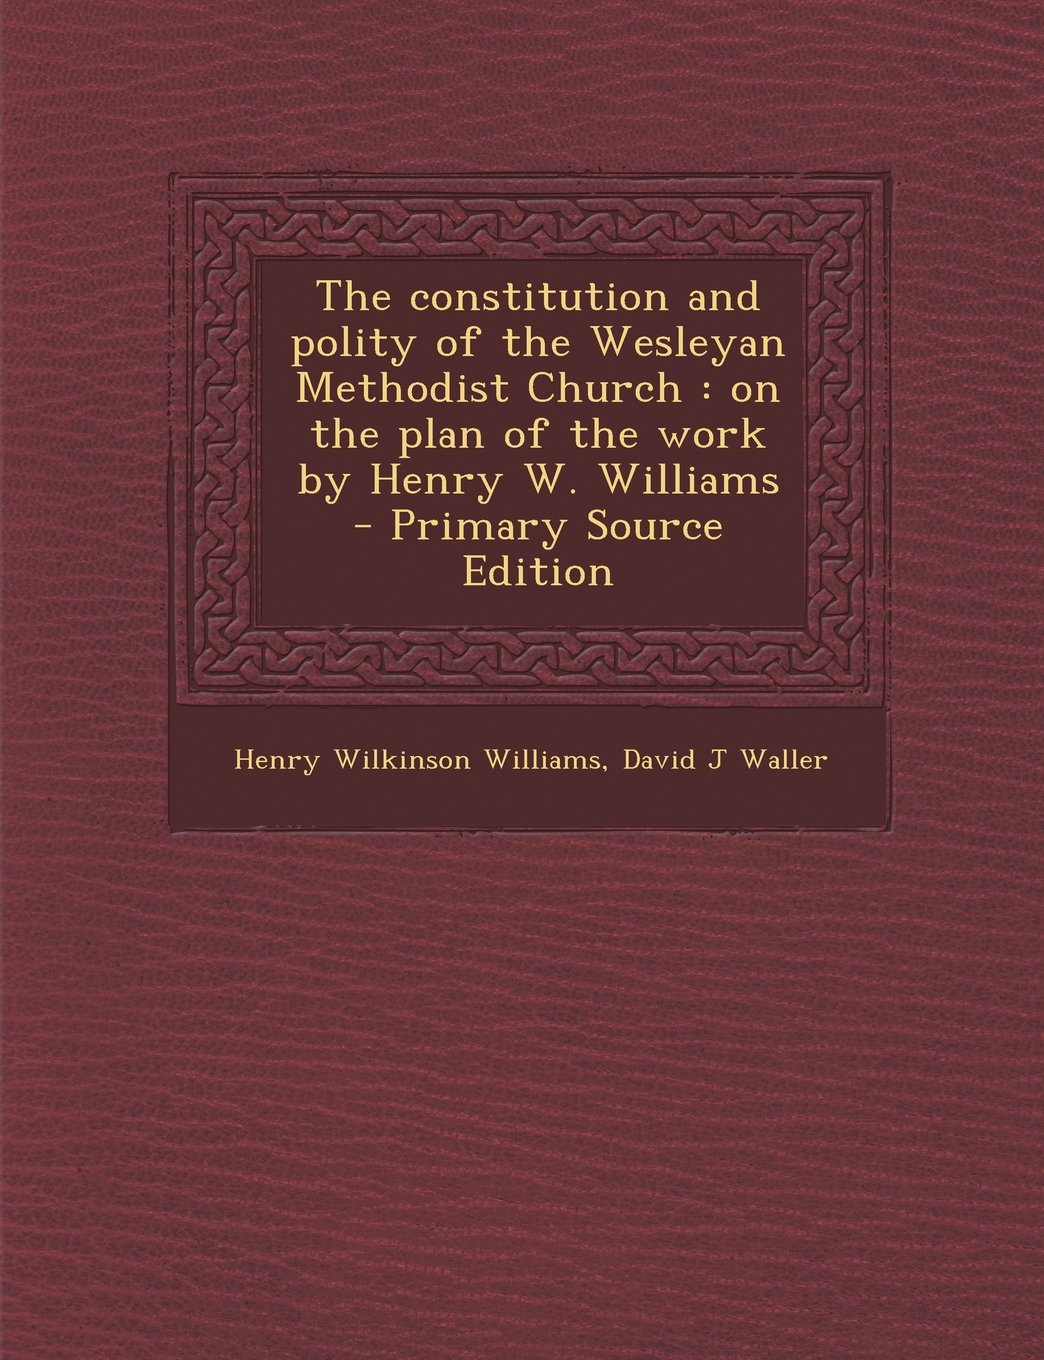 Read Online The constitution and polity of the Wesleyan Methodist Church: on the plan of the work by Henry W. Williams ebook